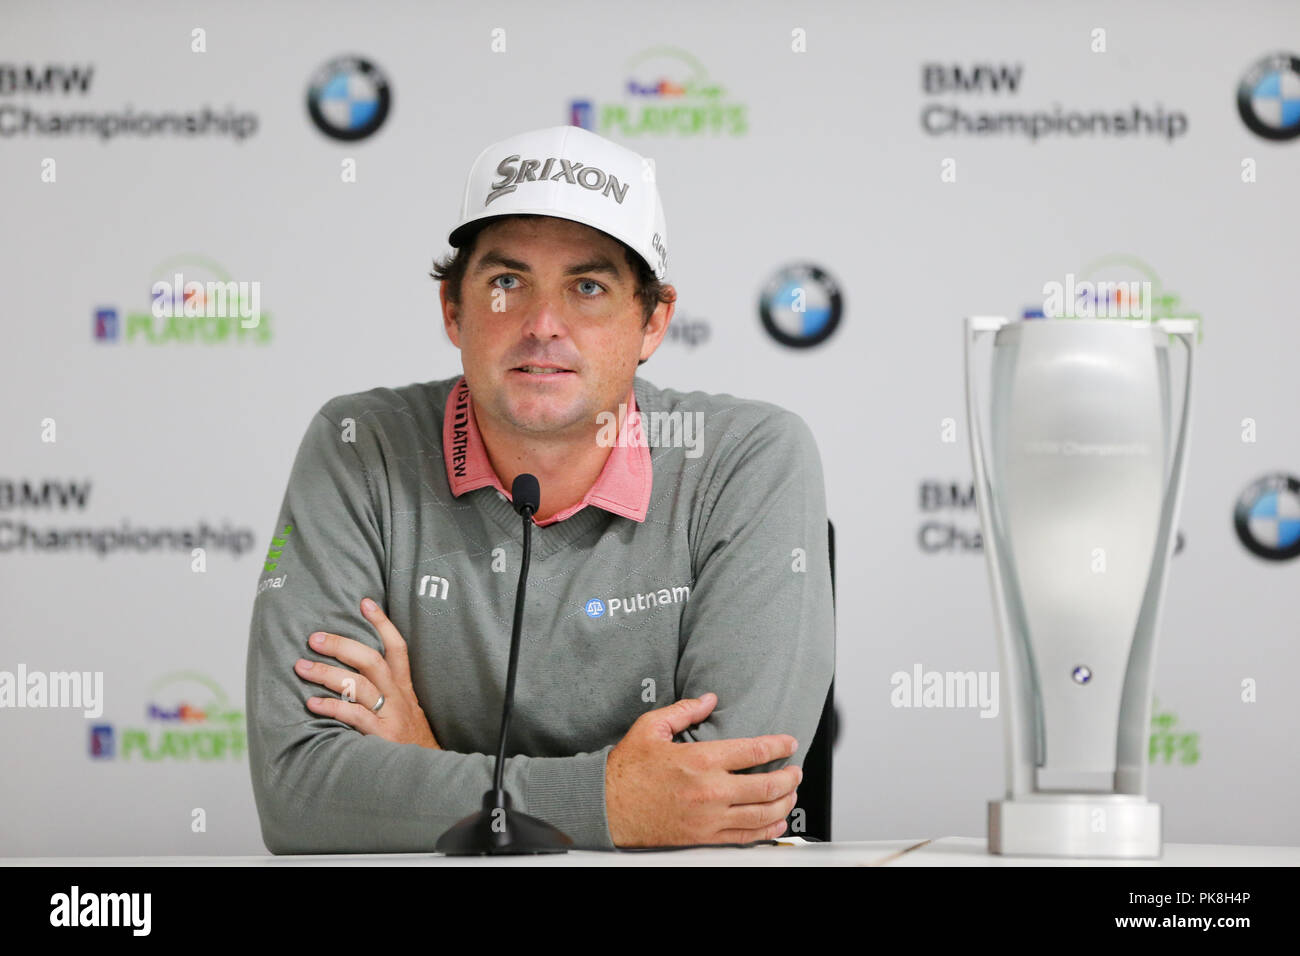 NEWTOWN SQUARE, PA- SEP 10: Keegan Bradley speaks to the media after winning the 2018 BMW Championship at Aronimink Golf Club. - Stock Image